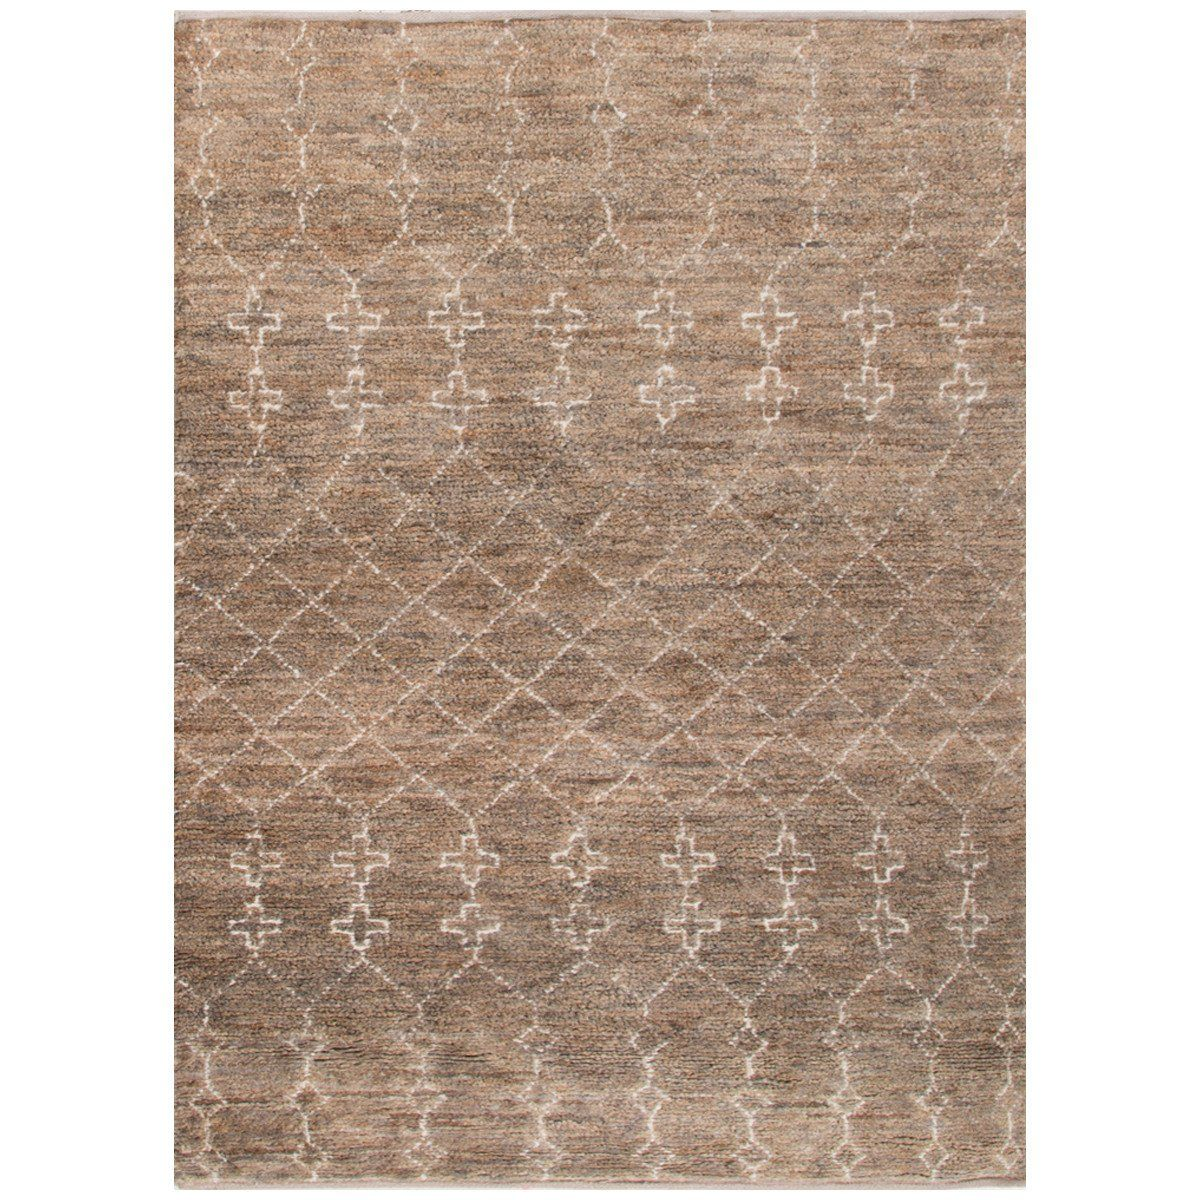 Jaipur Luxor By Nikki Chu Lapins Rug Products Rugs